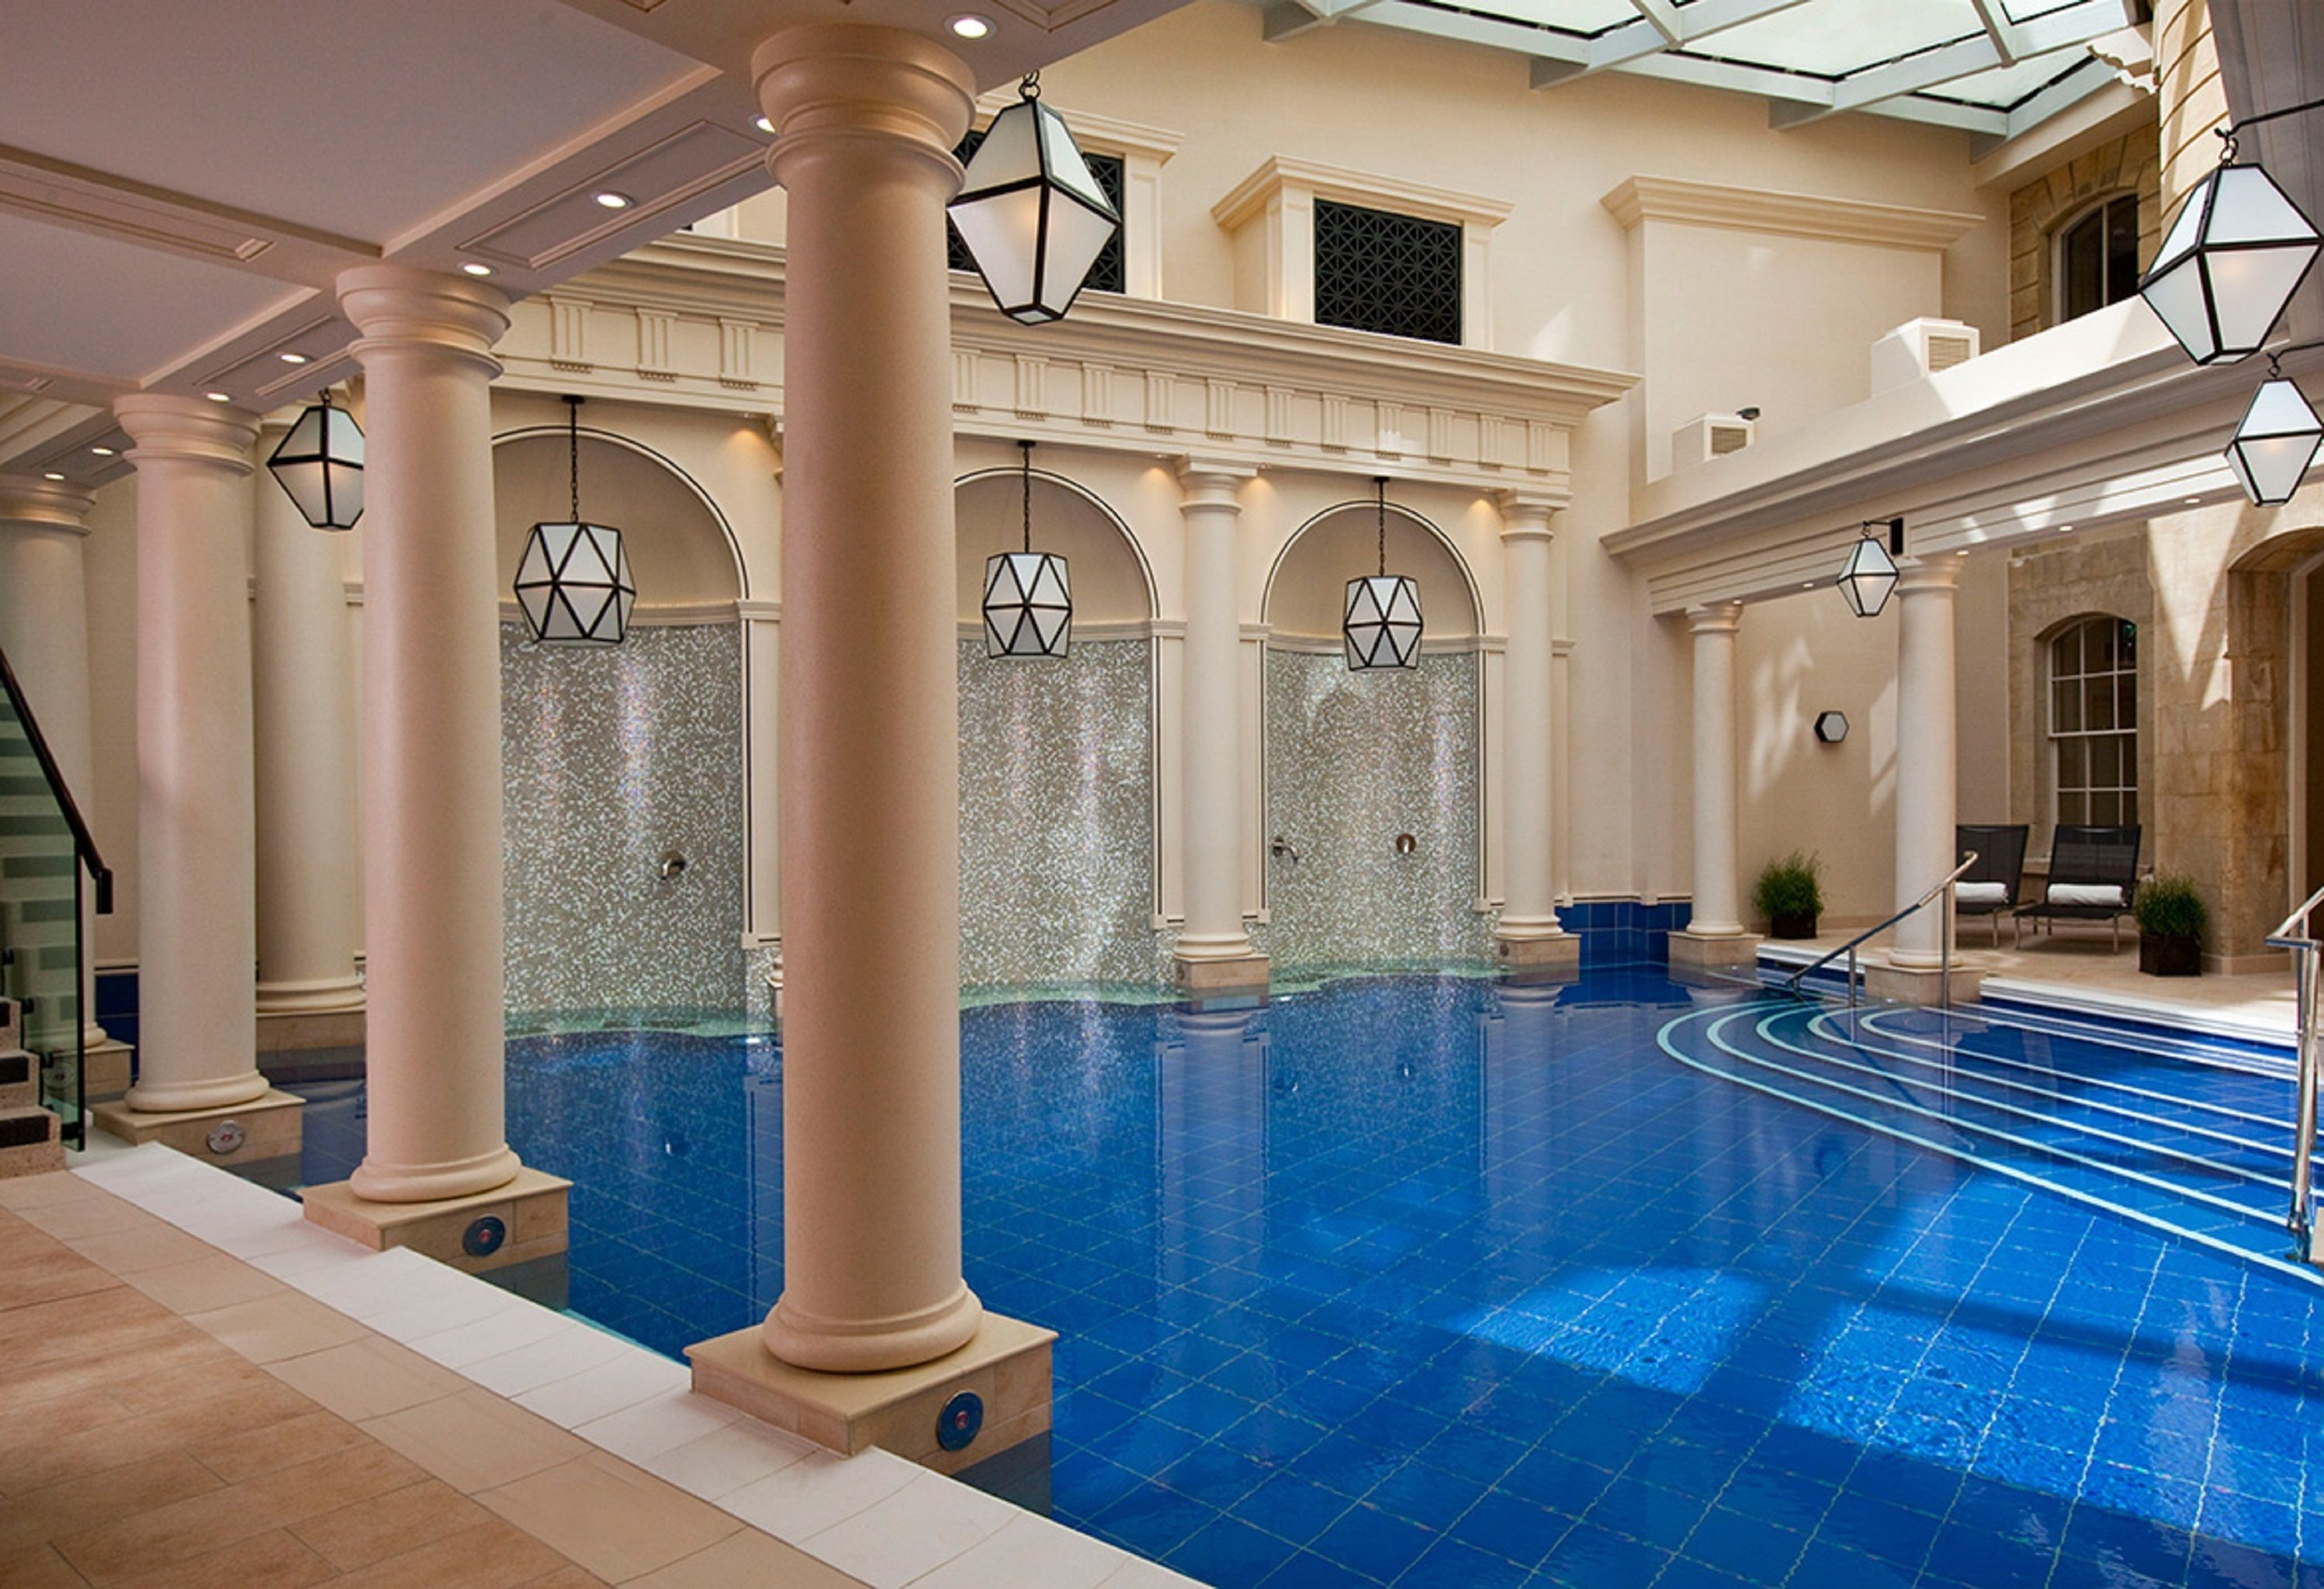 Courtesy of the Gainsborough Bath Spa / Expedia